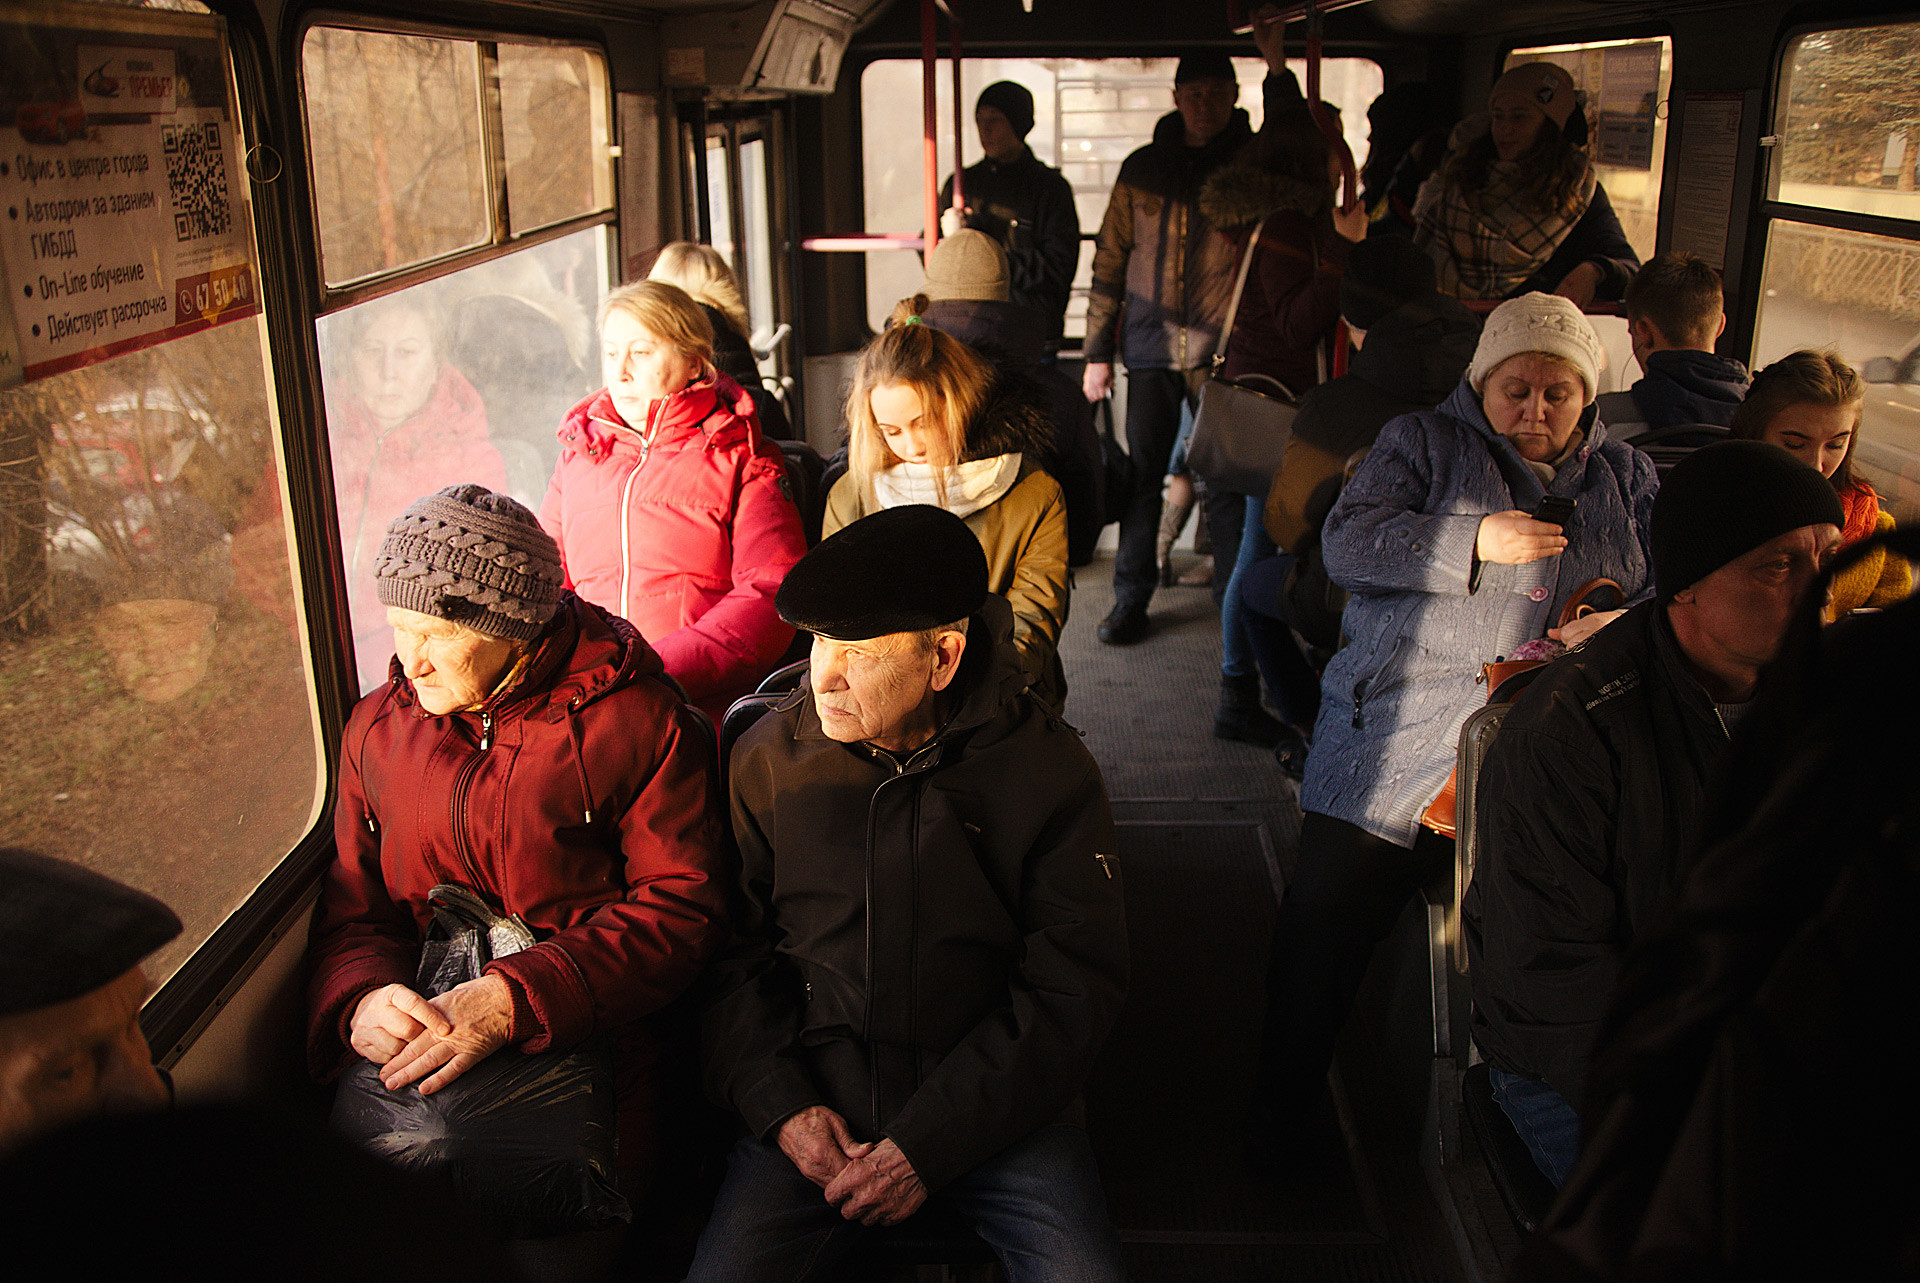 Currently, there are just over 646,000 people in Izhevsk.